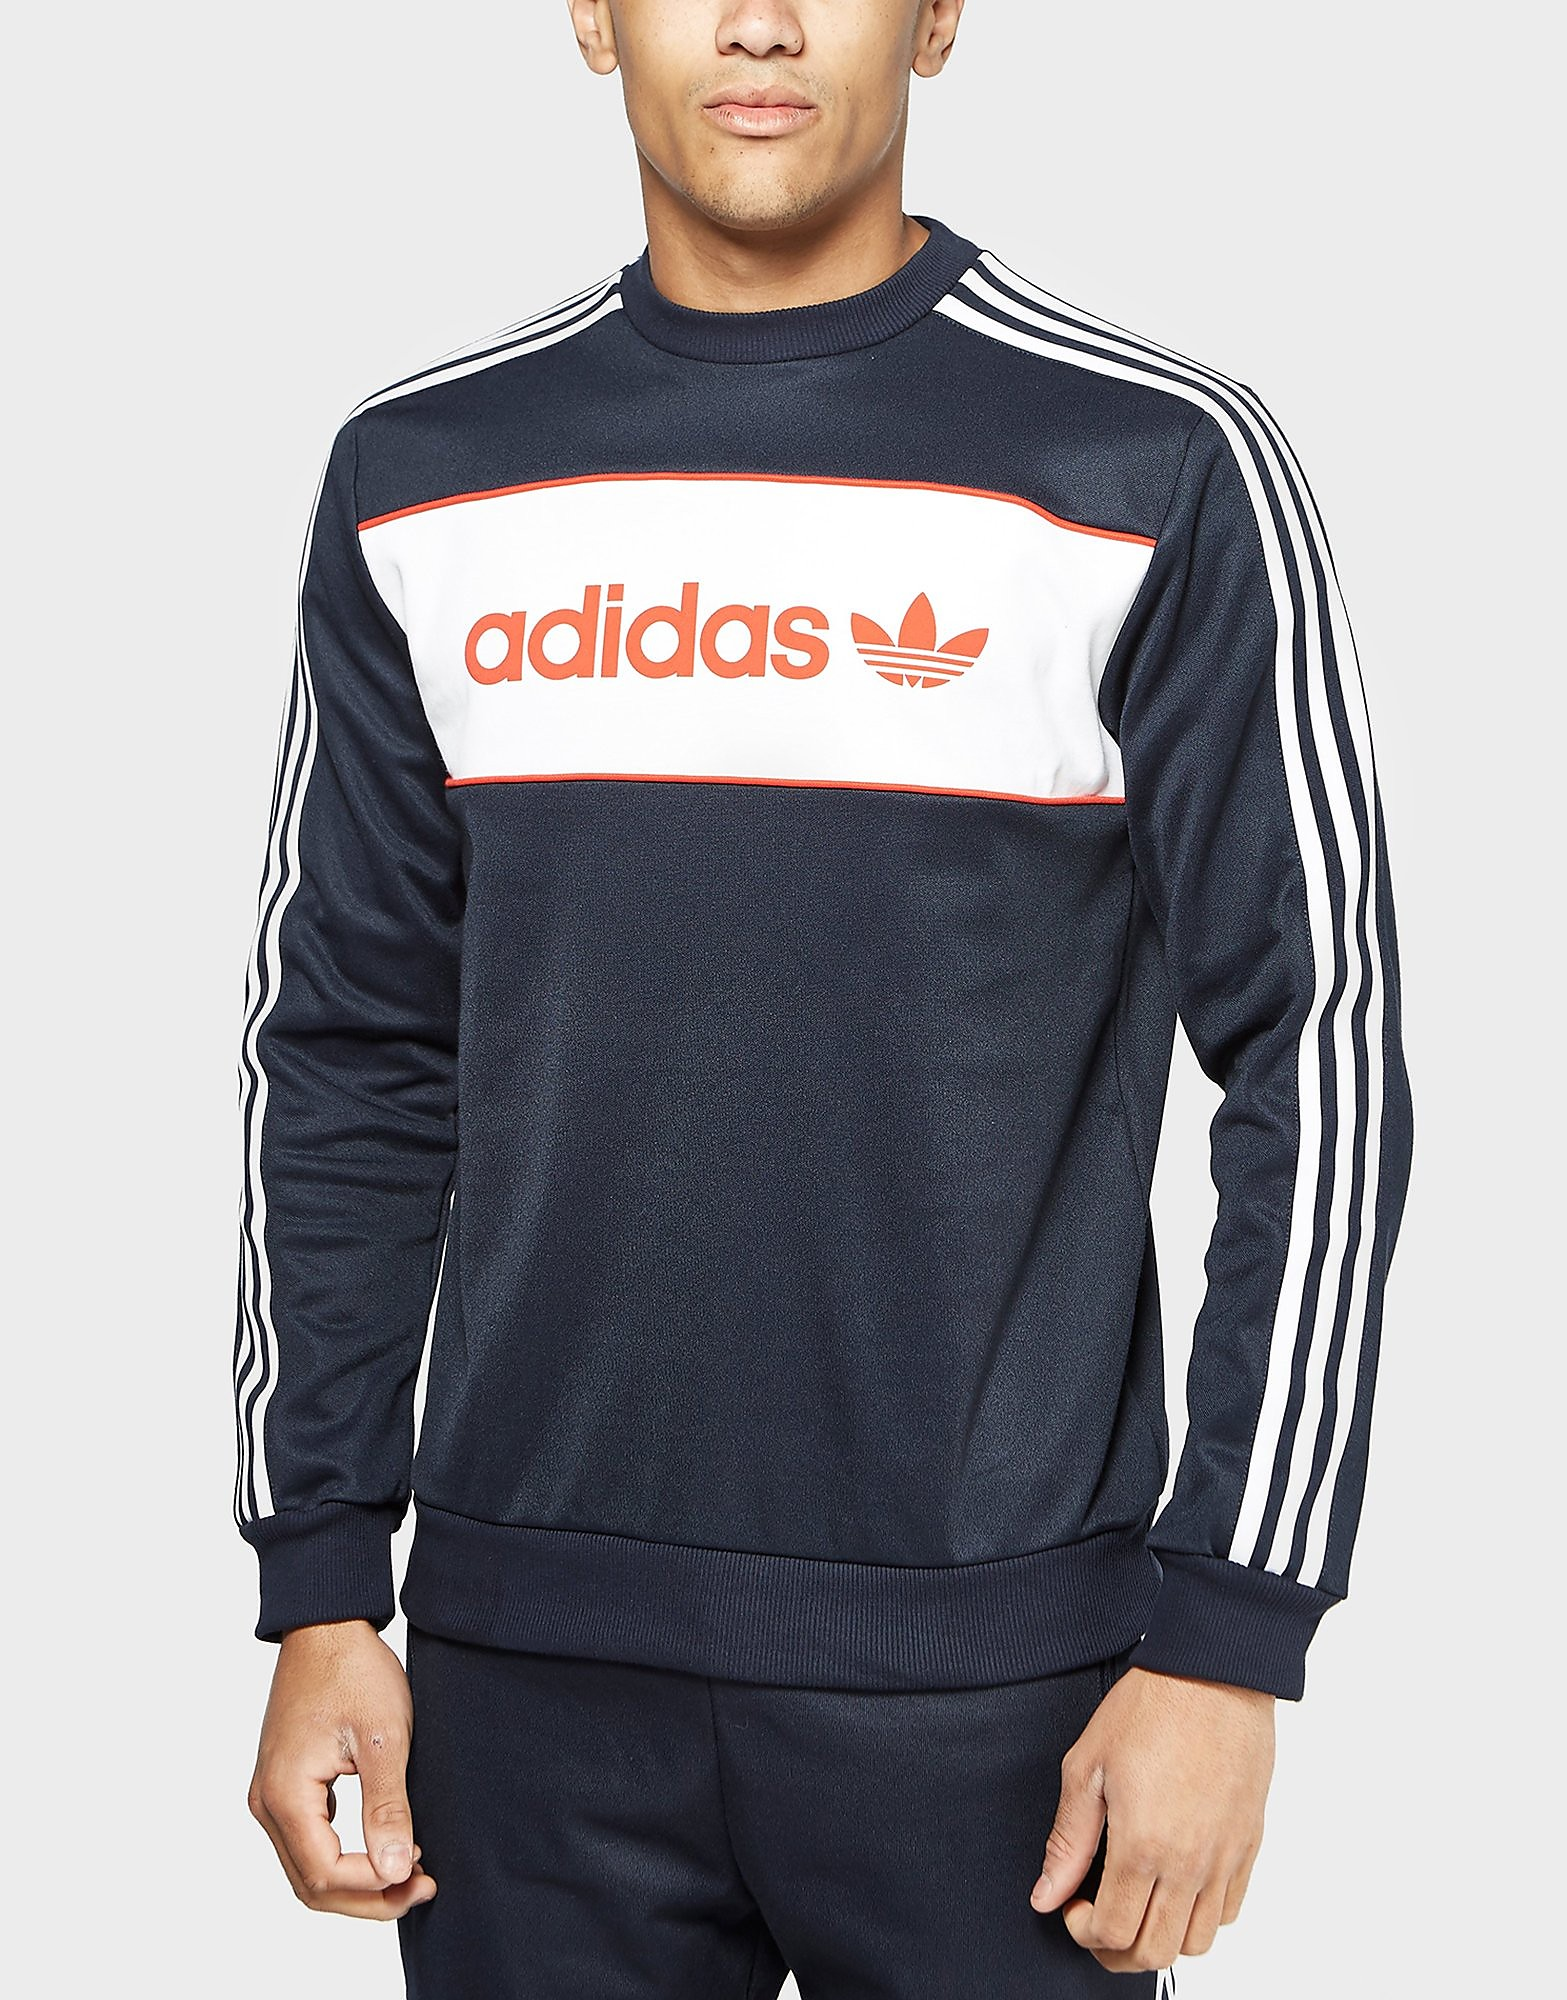 adidas Originals Block Crew Sweatshirt